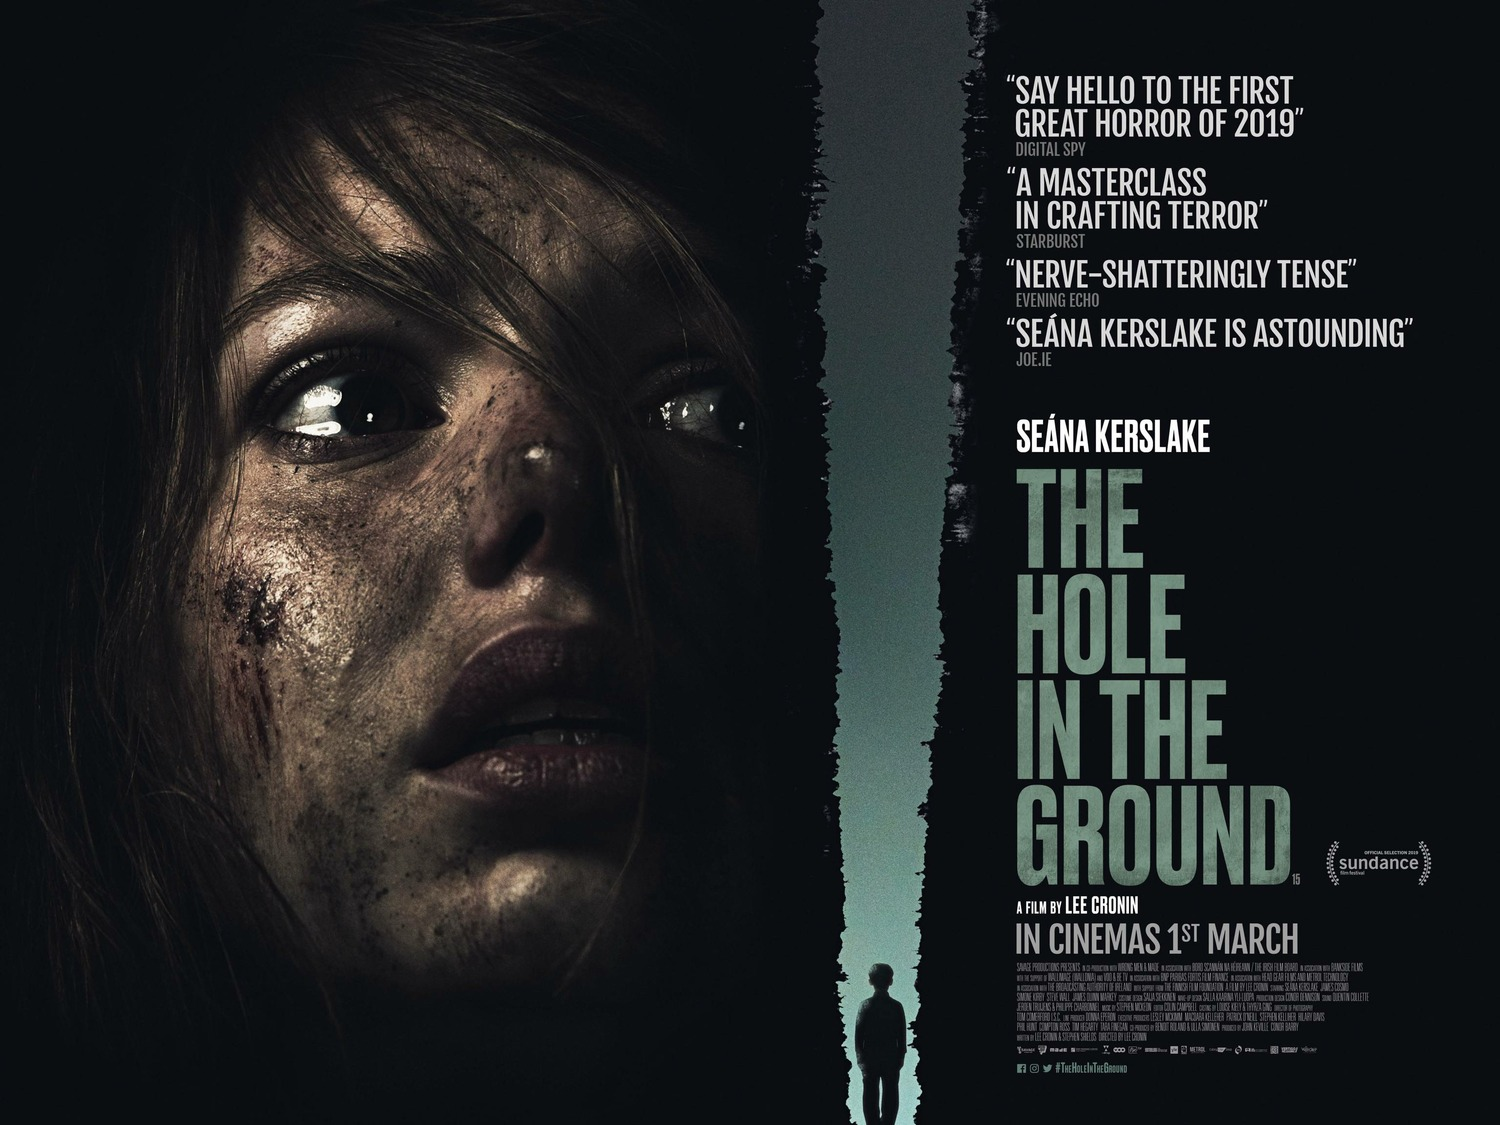 Extra Large Movie Poster Image for The Hole in the Ground (#2 of 2)